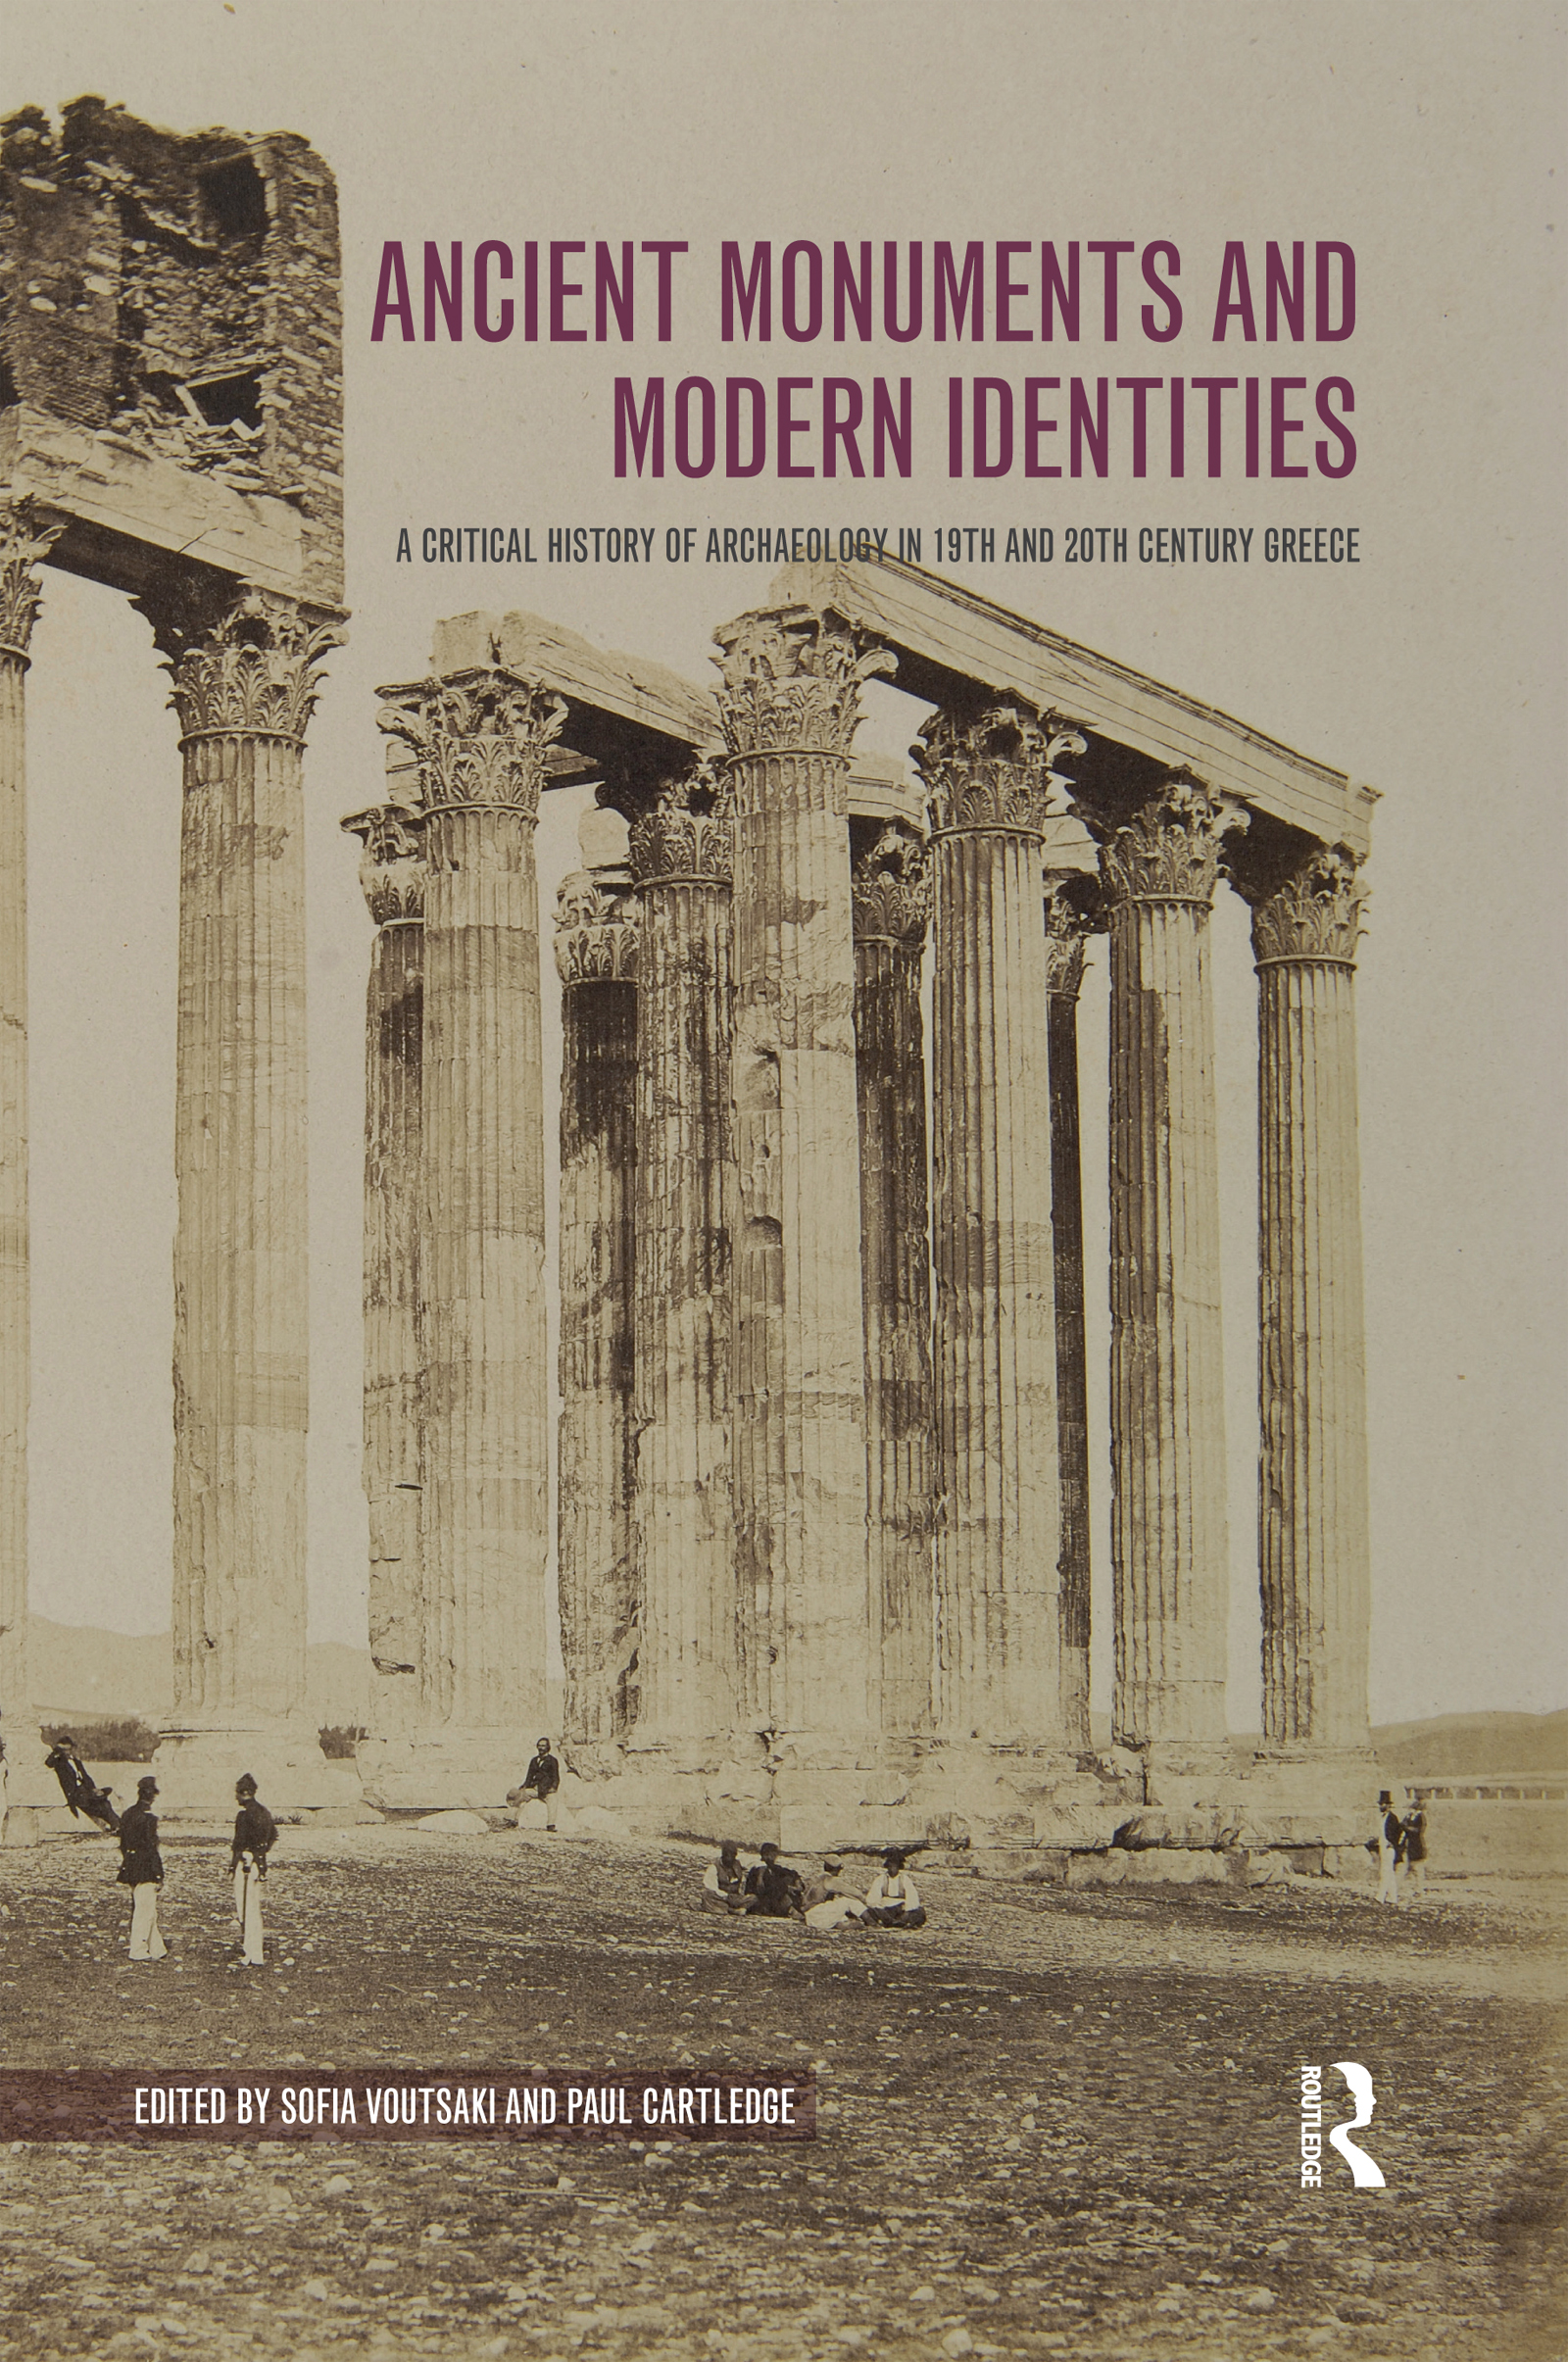 Ancient Monuments and Modern Identities